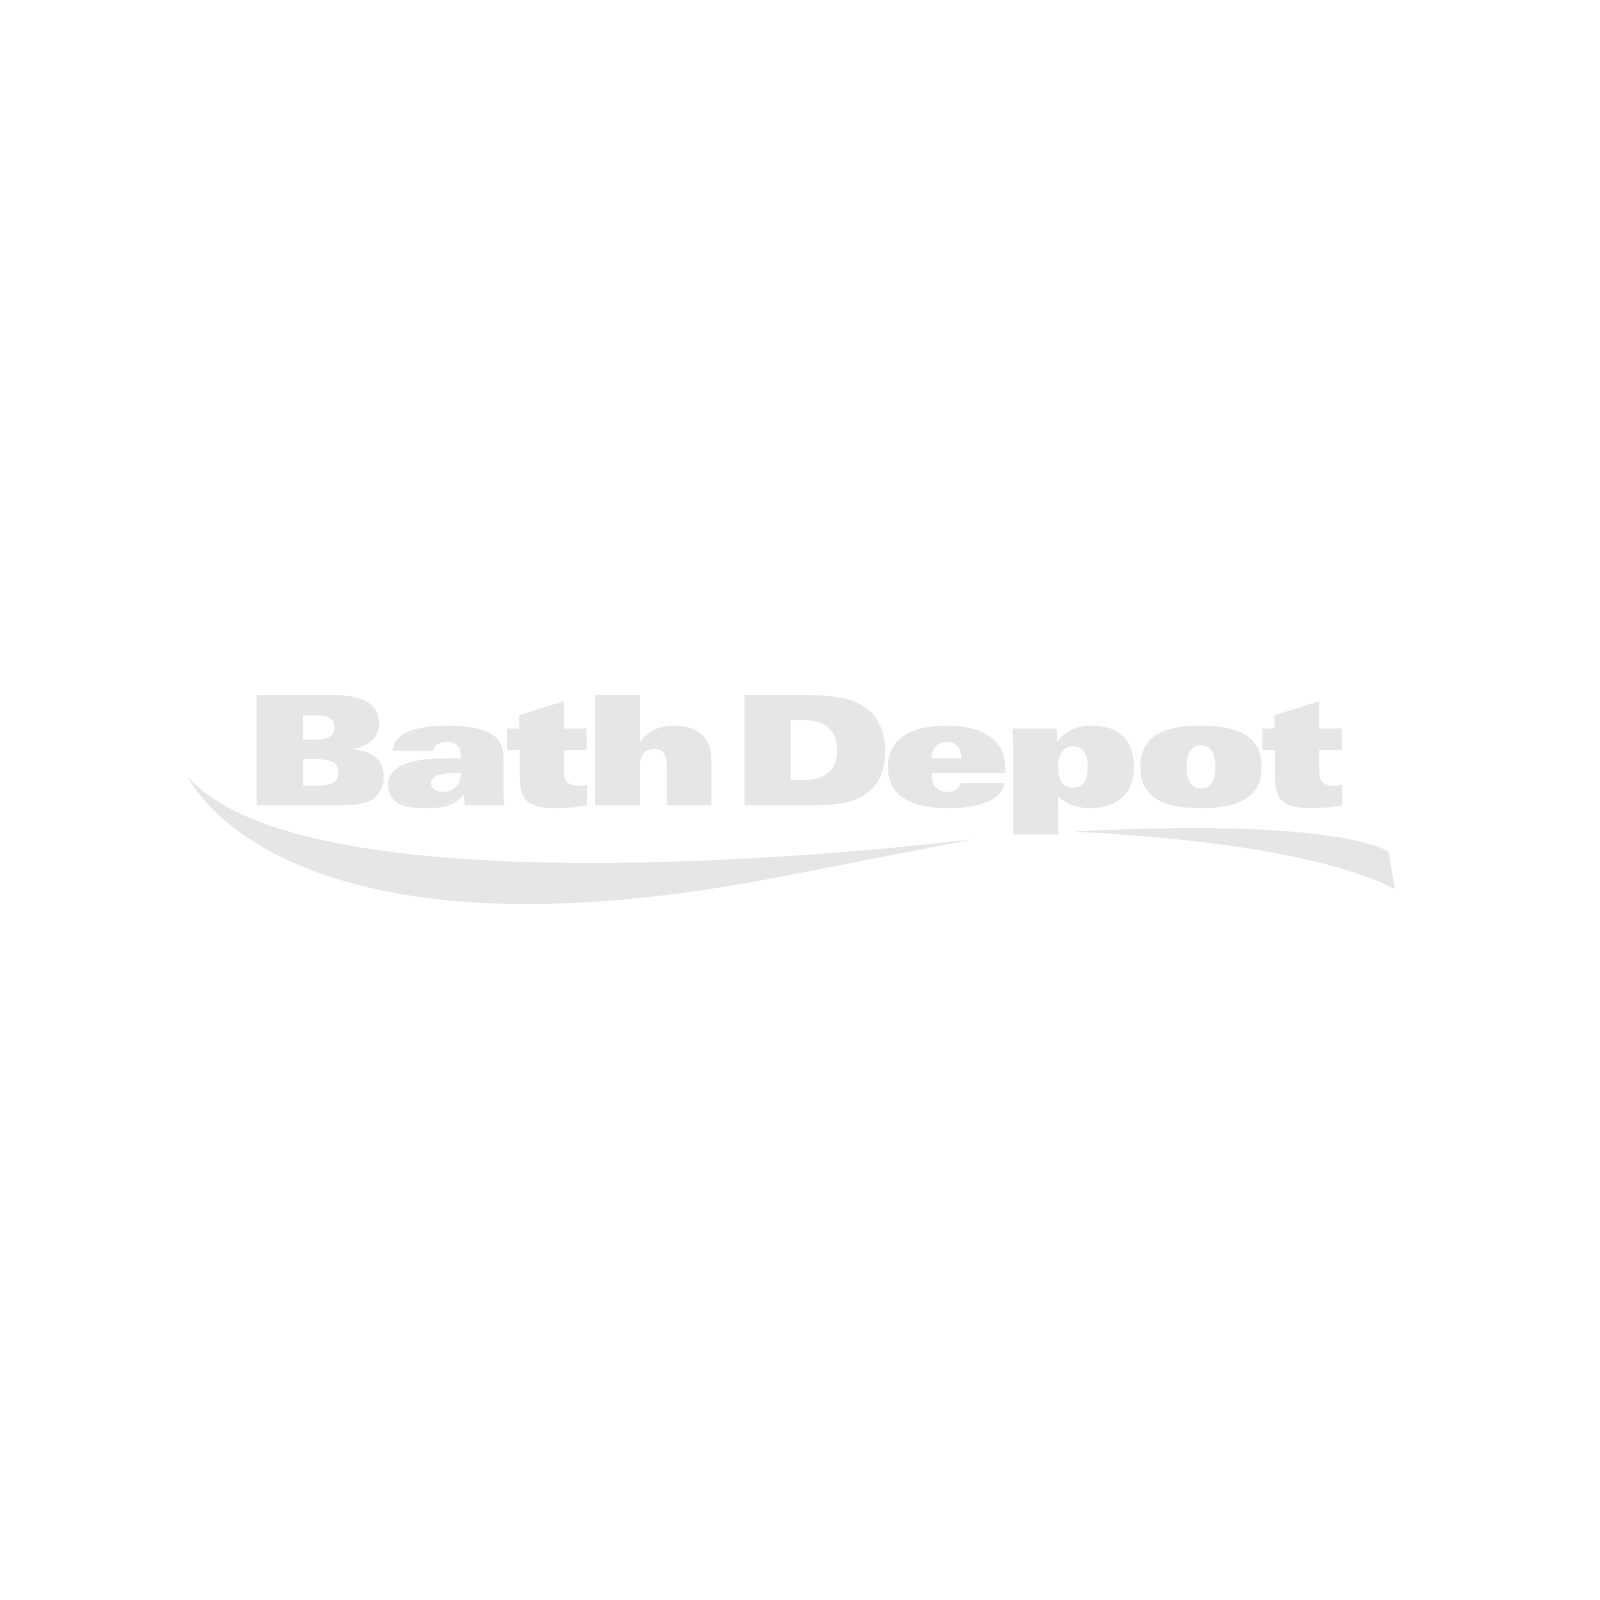 buy undermount kitchen sink white towels single 28 inch x 18 bath depot